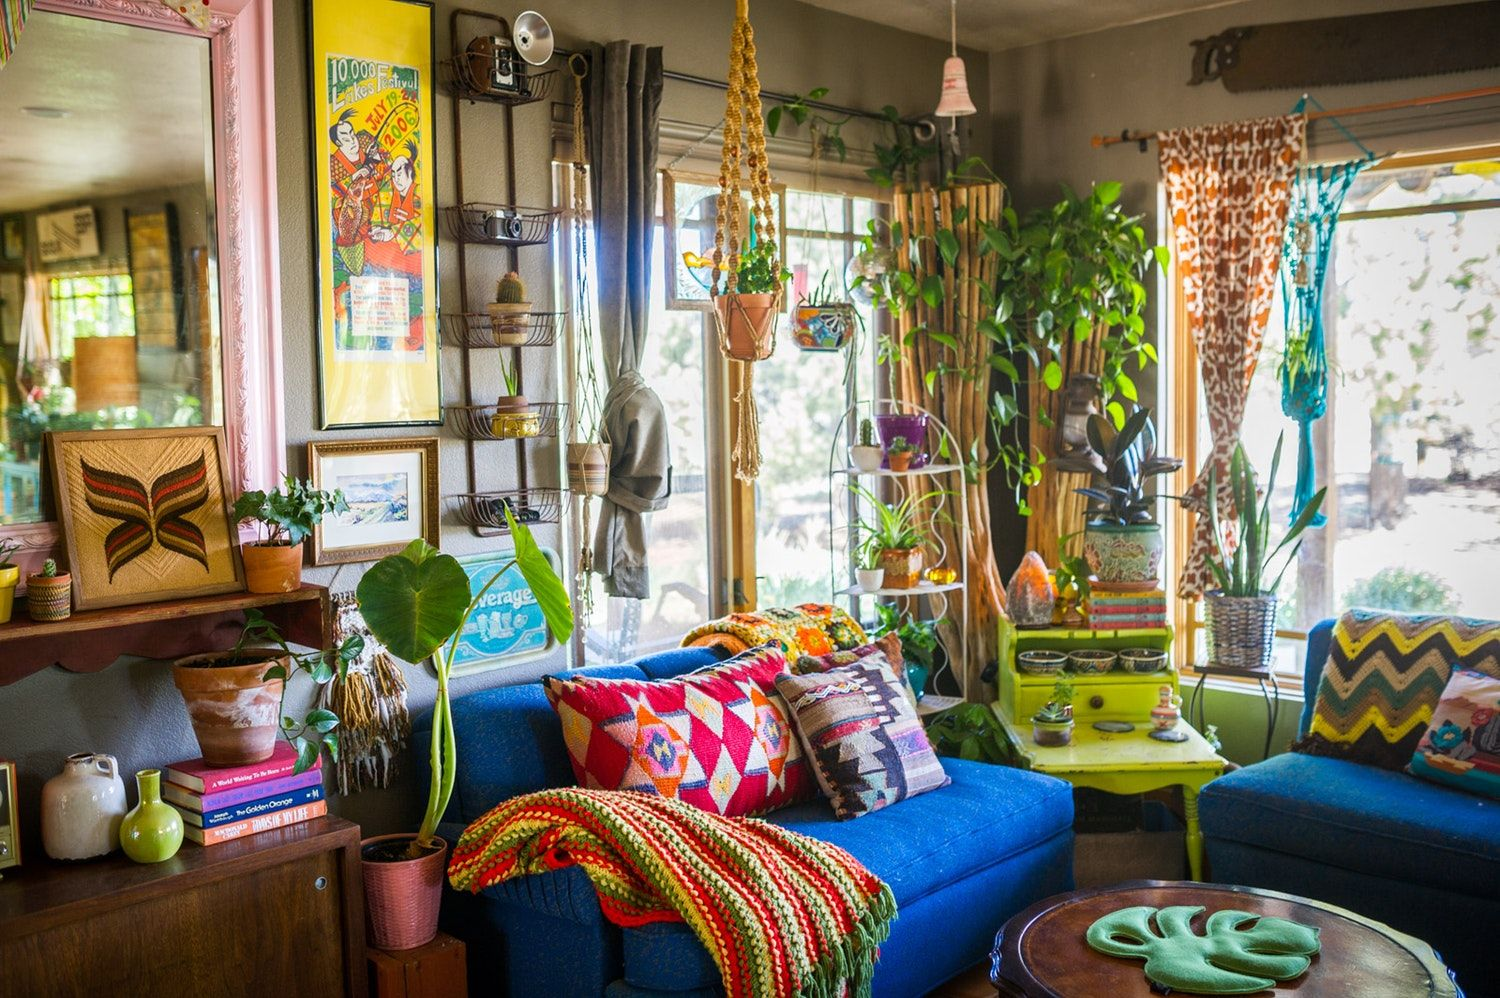 Elegant The Most Maximalist Bohemian Home Just Might Be On This Farm In Colorado U2014  House Call